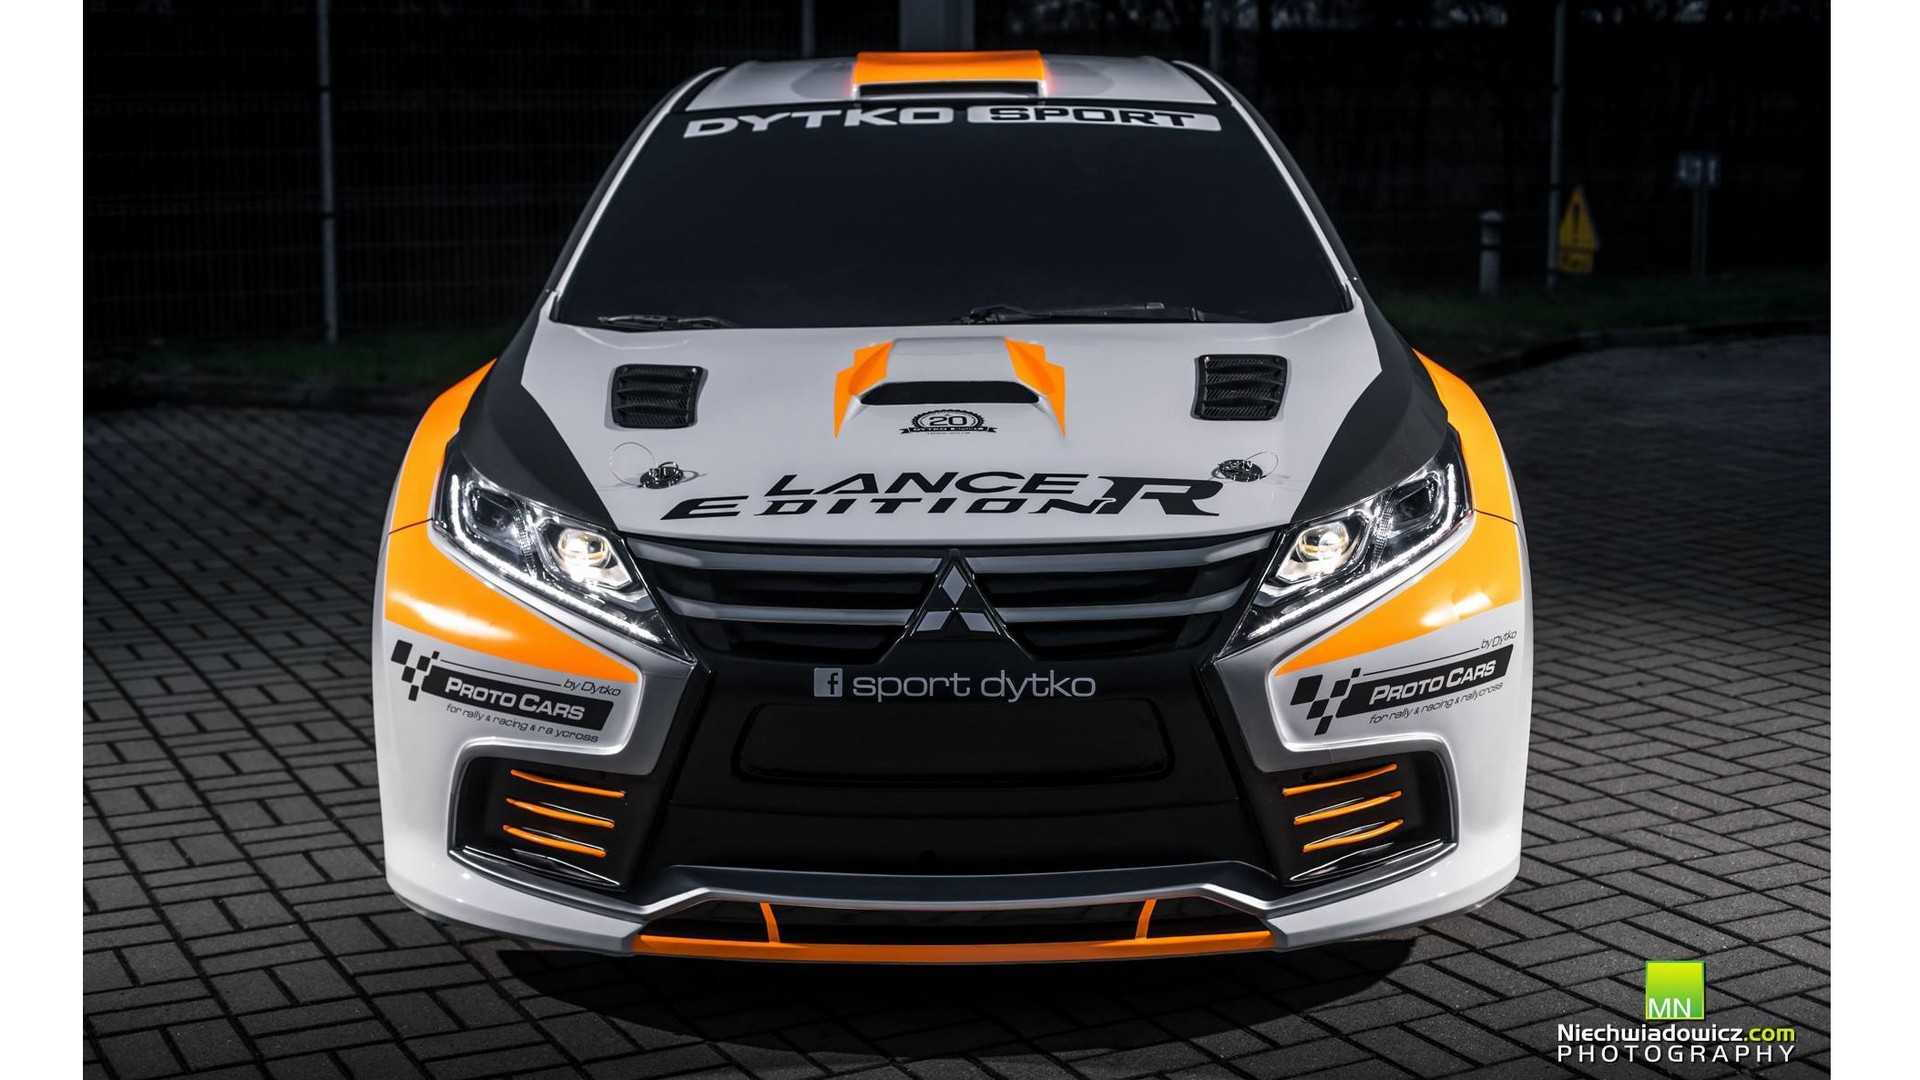 Polish firm builds convincing Evo XI body kit